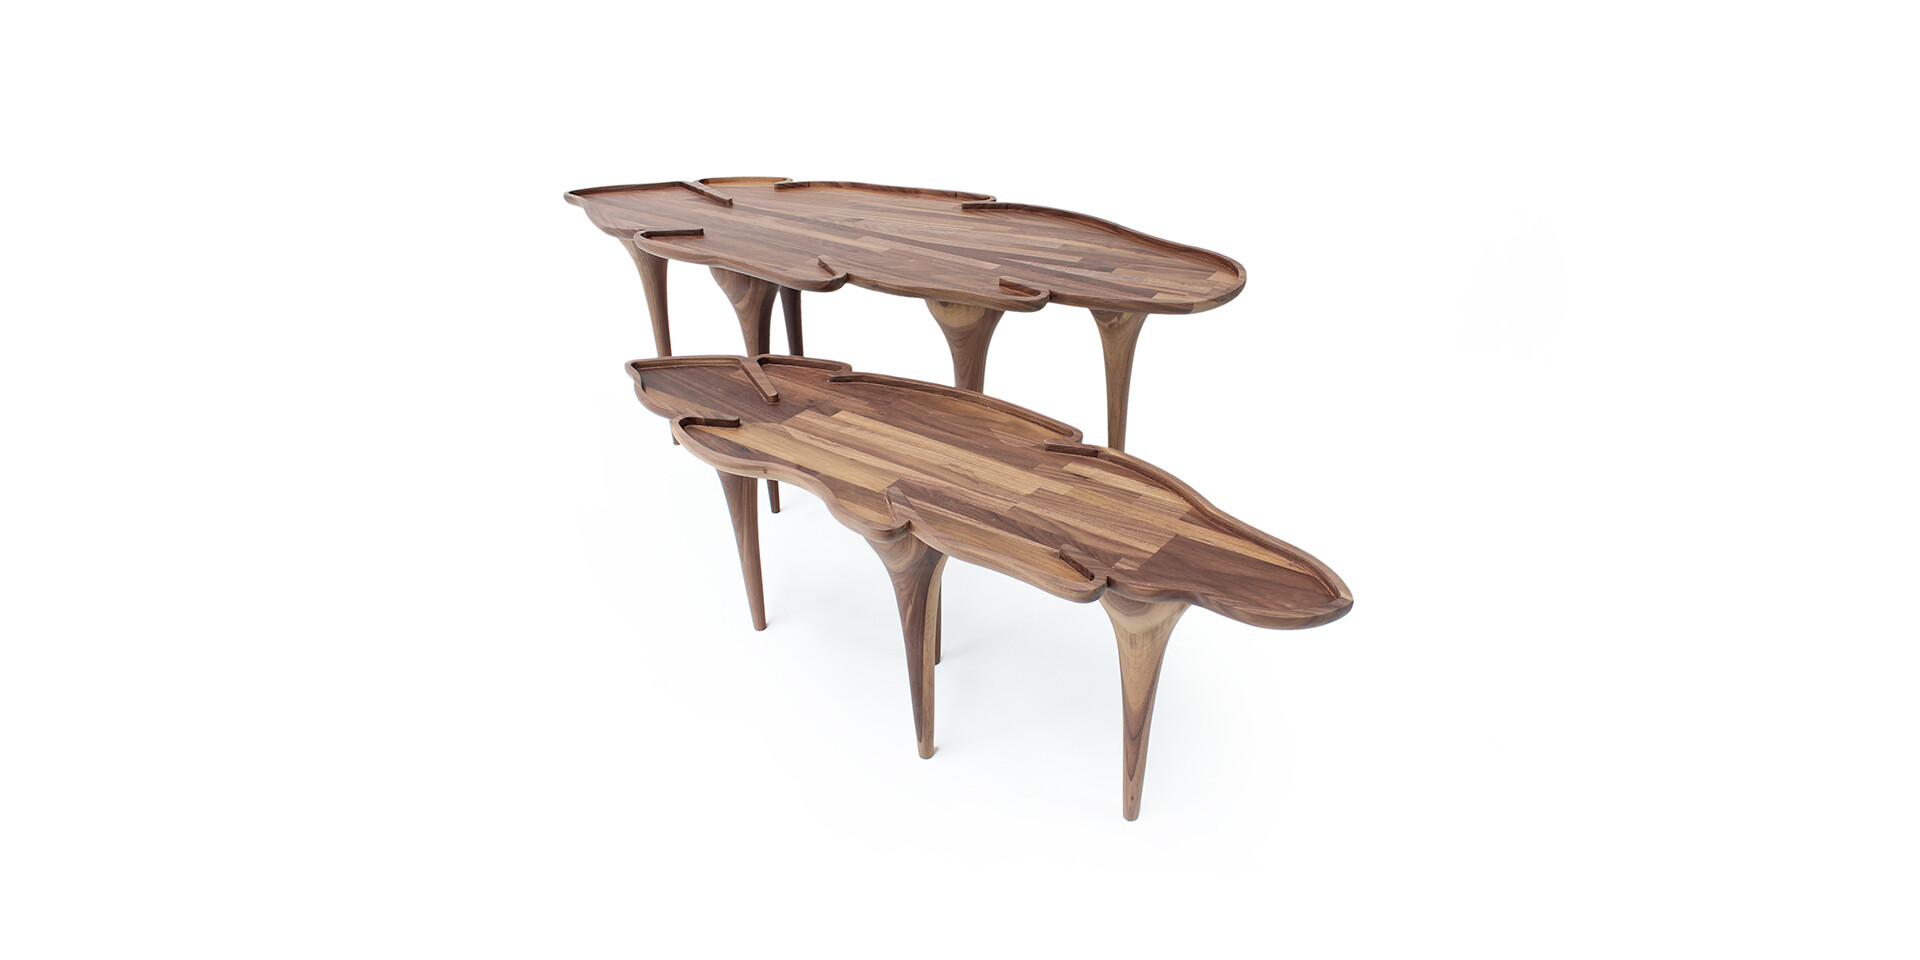 KOROWAI COFFEE TABLE top side view ALMA de LUCE